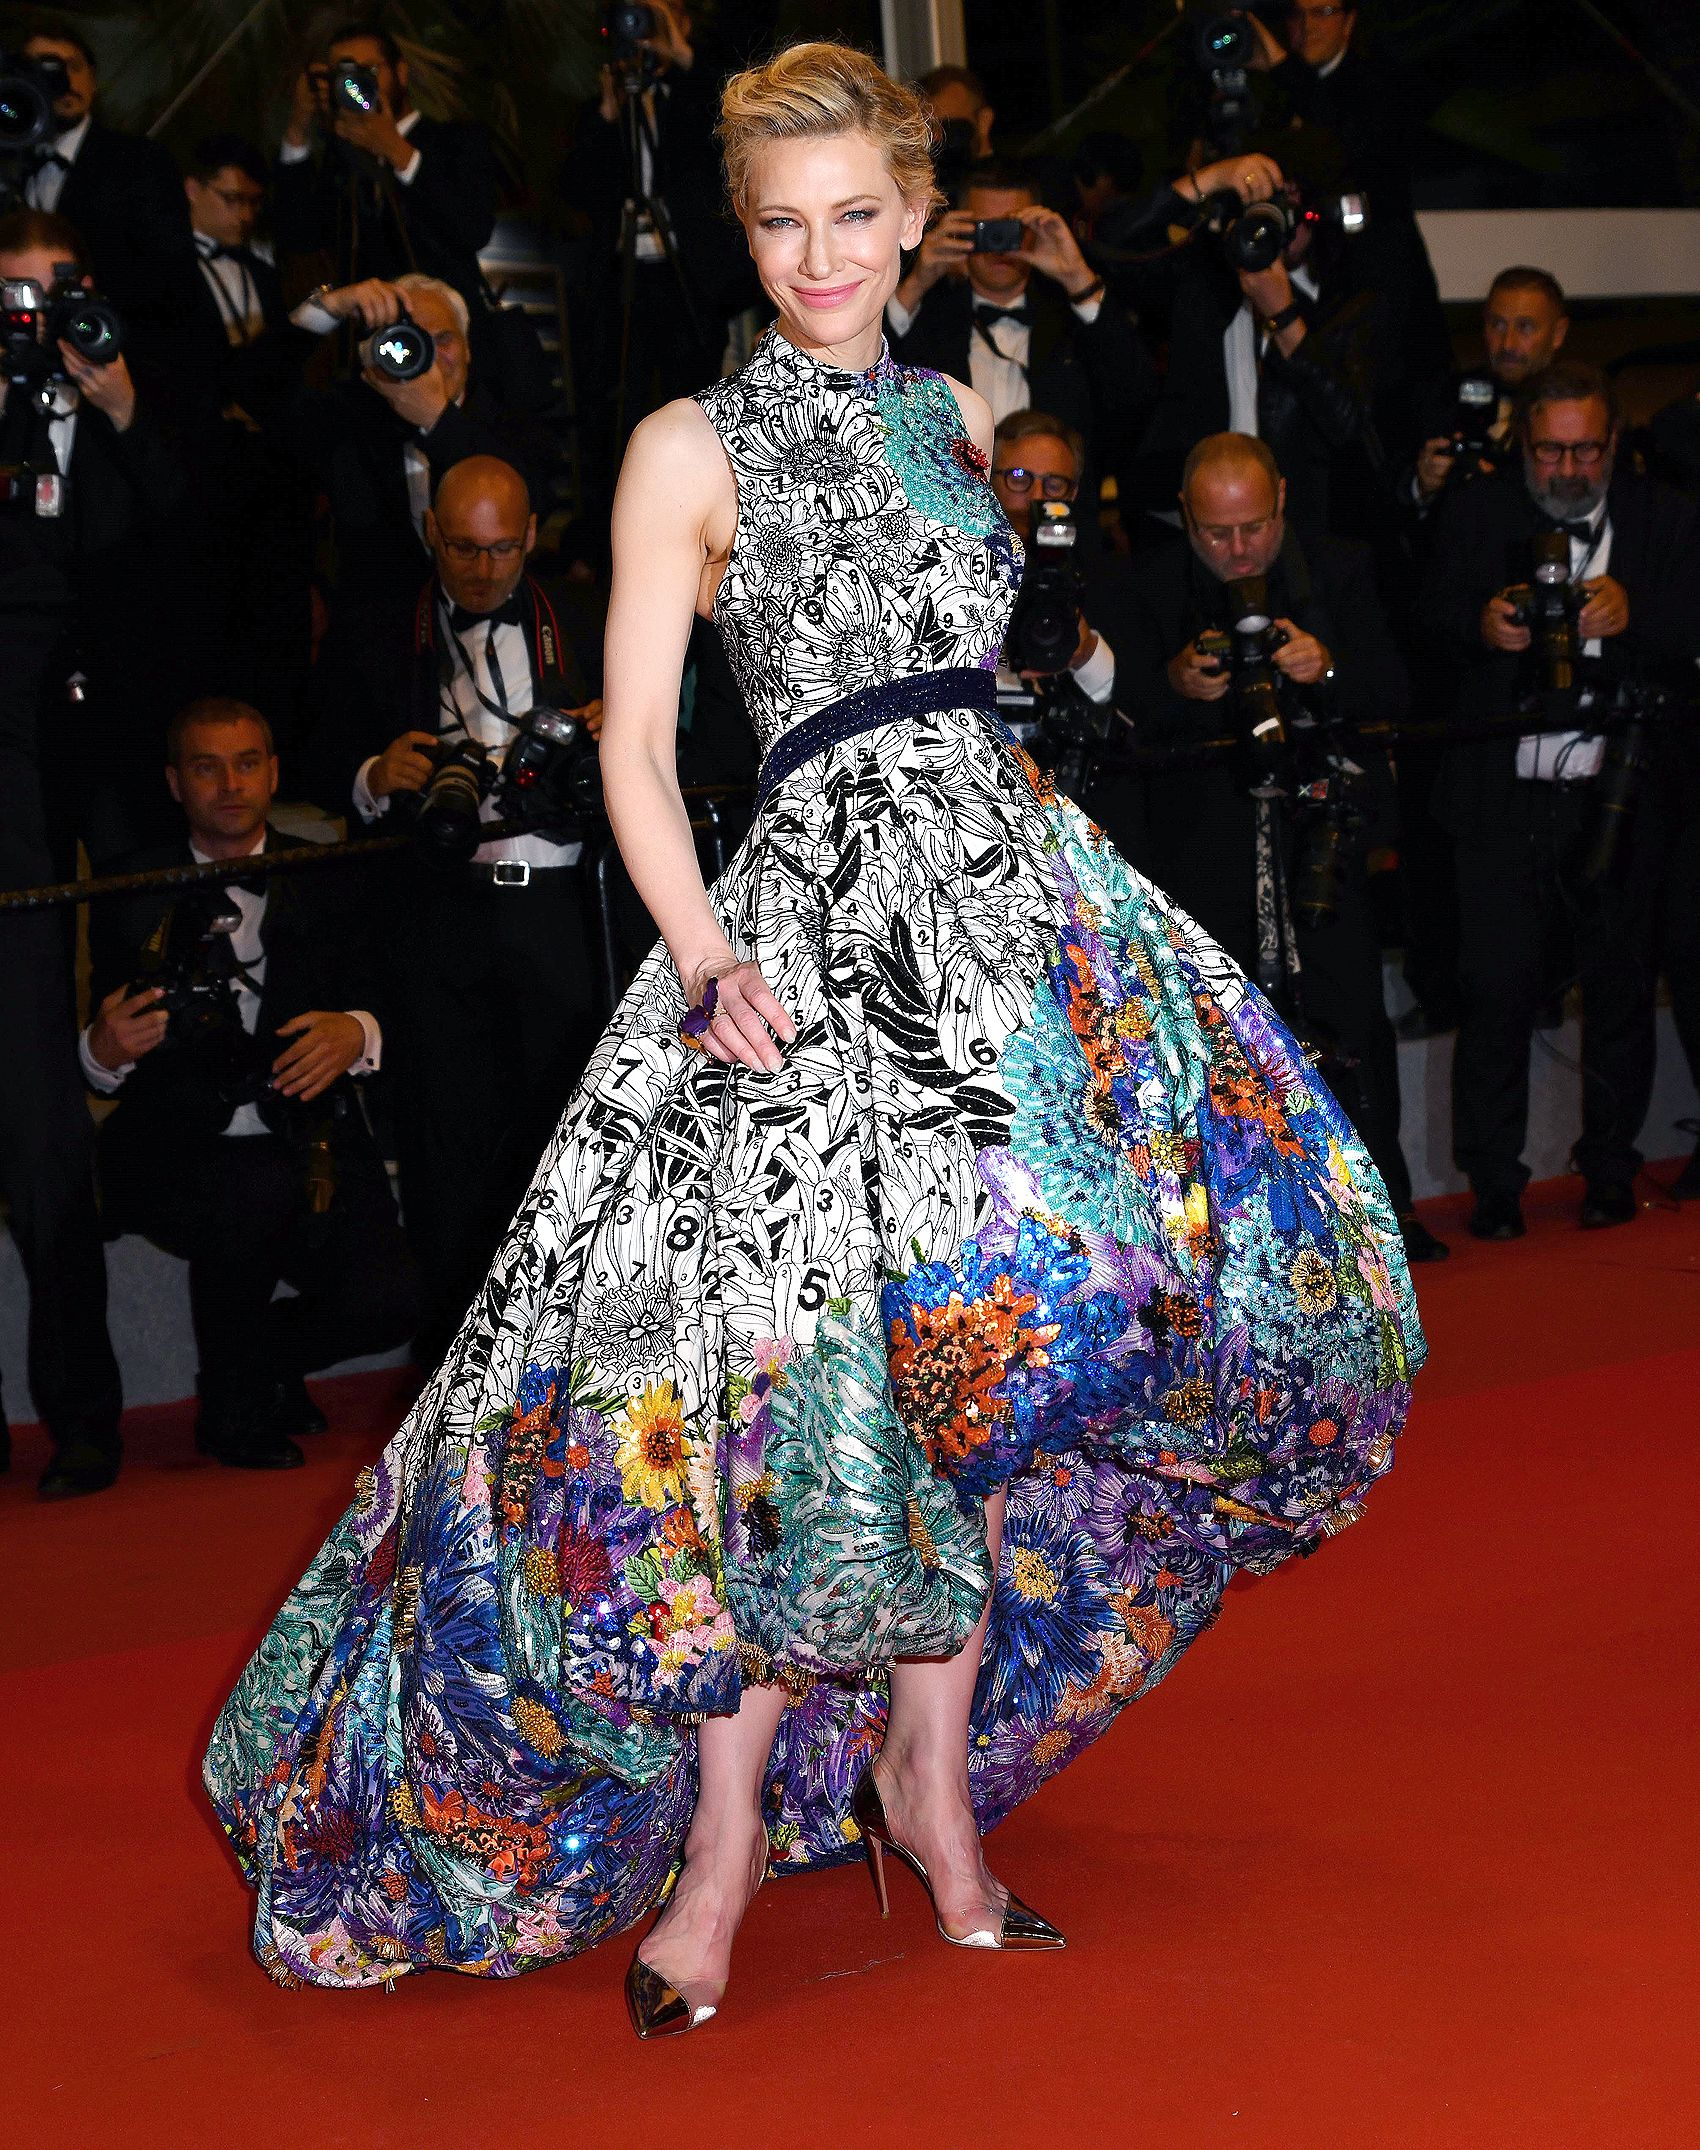 1f190e312cb99 The jury member wore an sequin, bead and Swarovski crystal-embroidered Mary  Katrantzou high-low gown and metallic pumps to the premiere of Cold War.